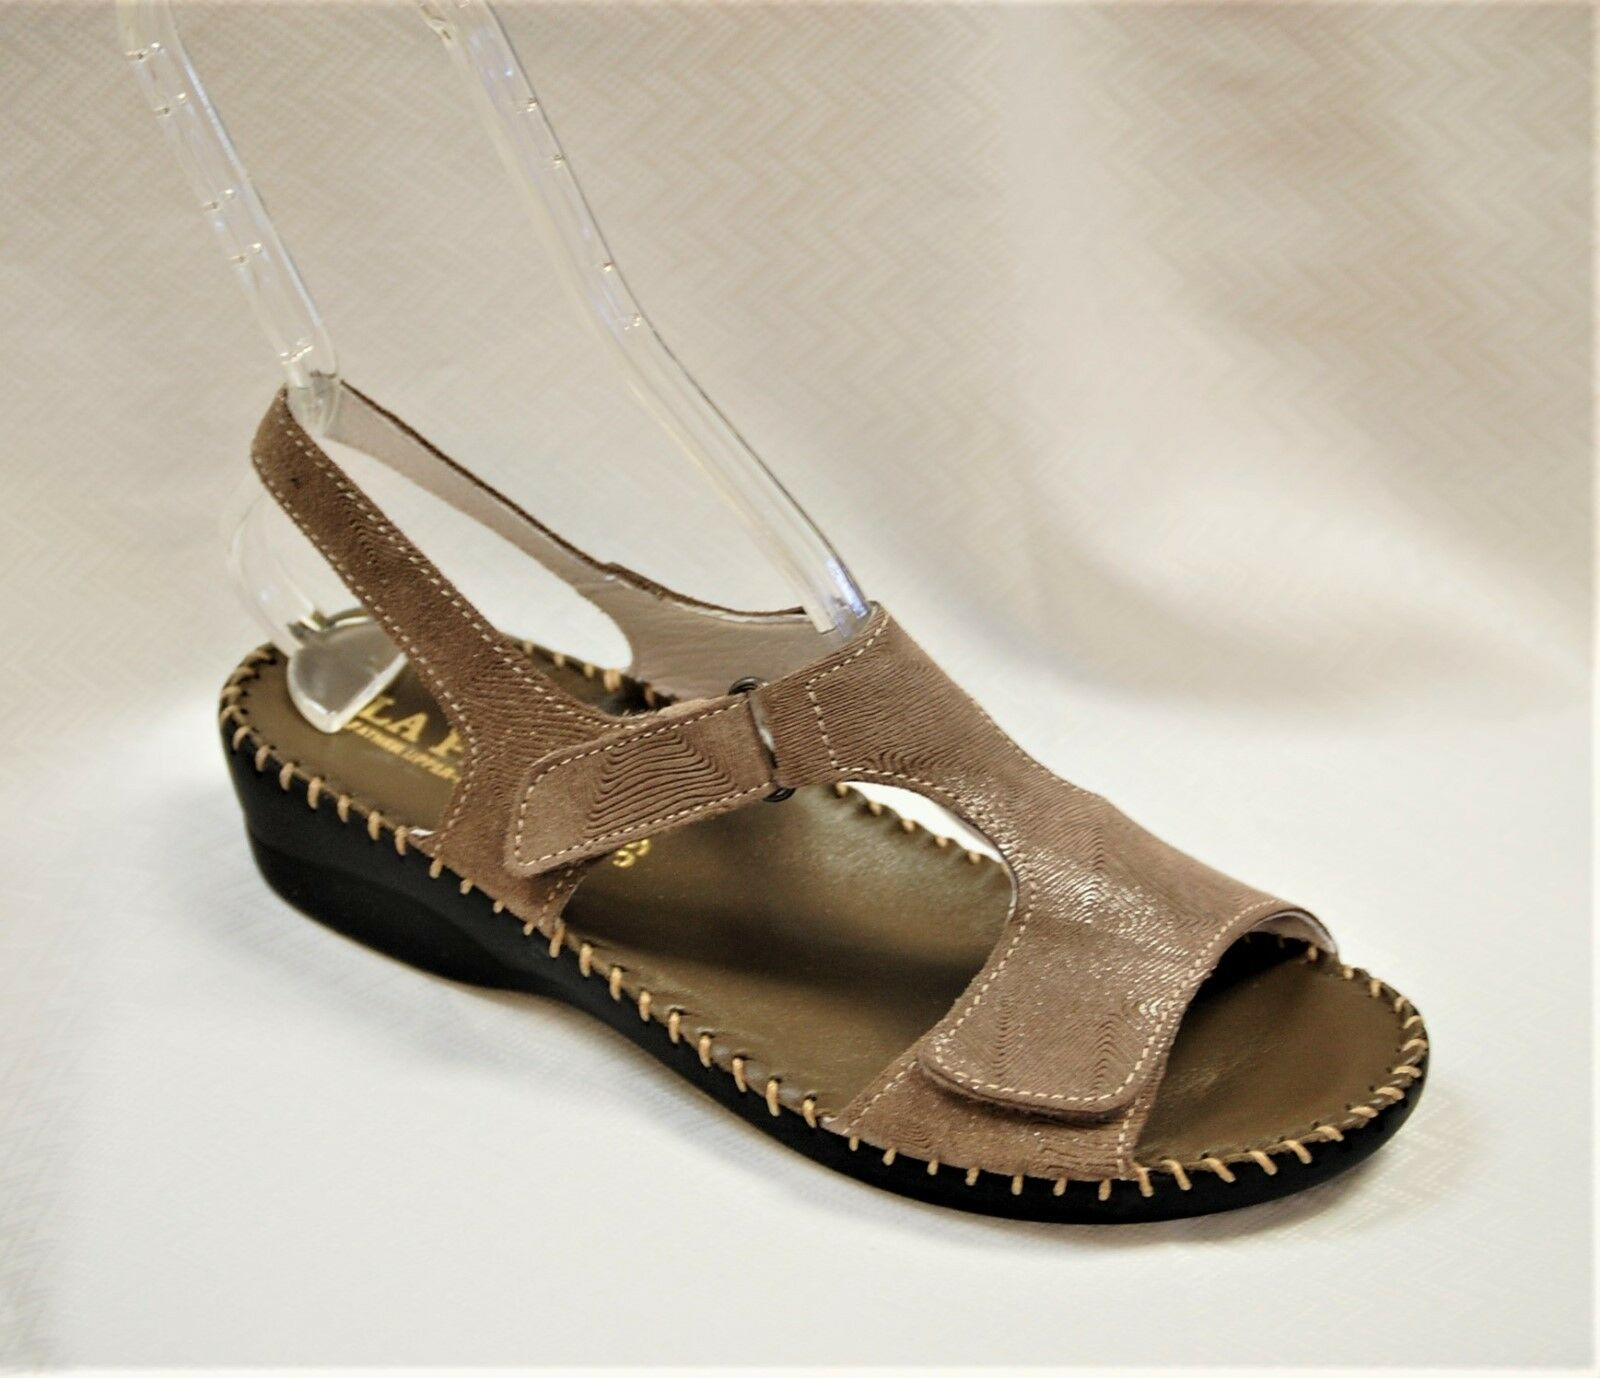 La Plume Expo Women's Taupe print Leather wedge sandal adjustable Straps size 36